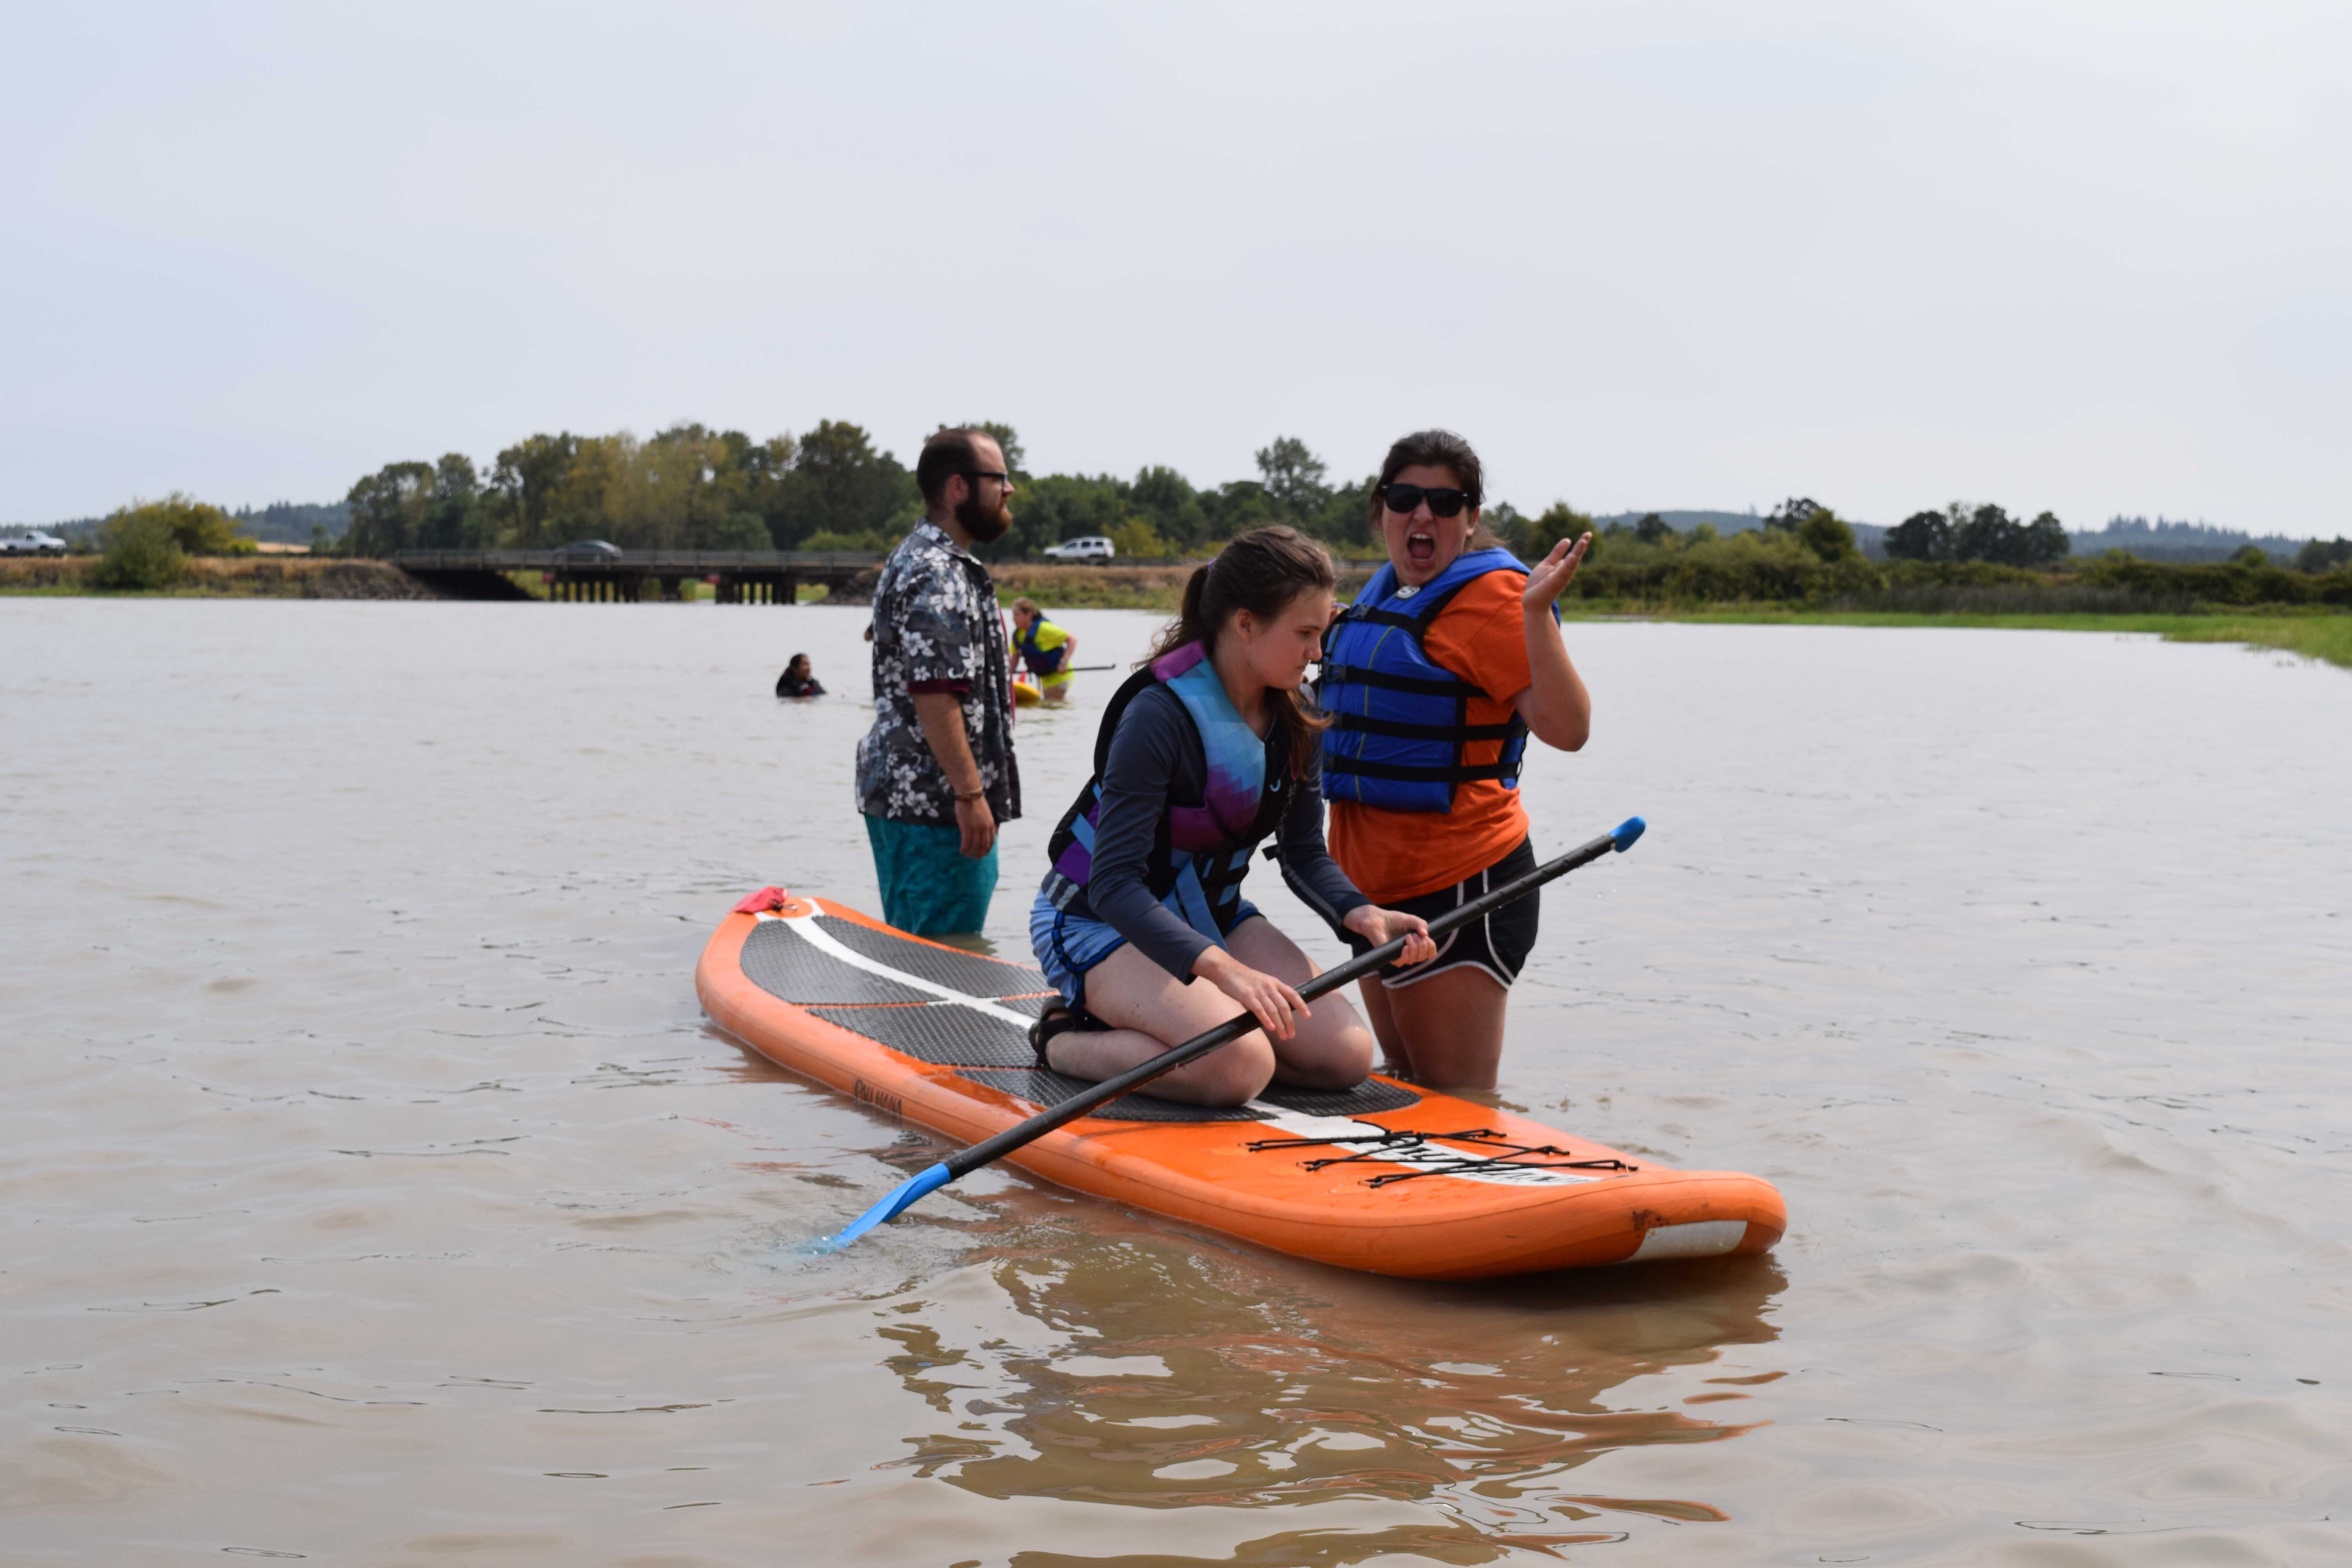 Base Campers got in on the Stand-Up Paddleboarding (SUP) trend this summer